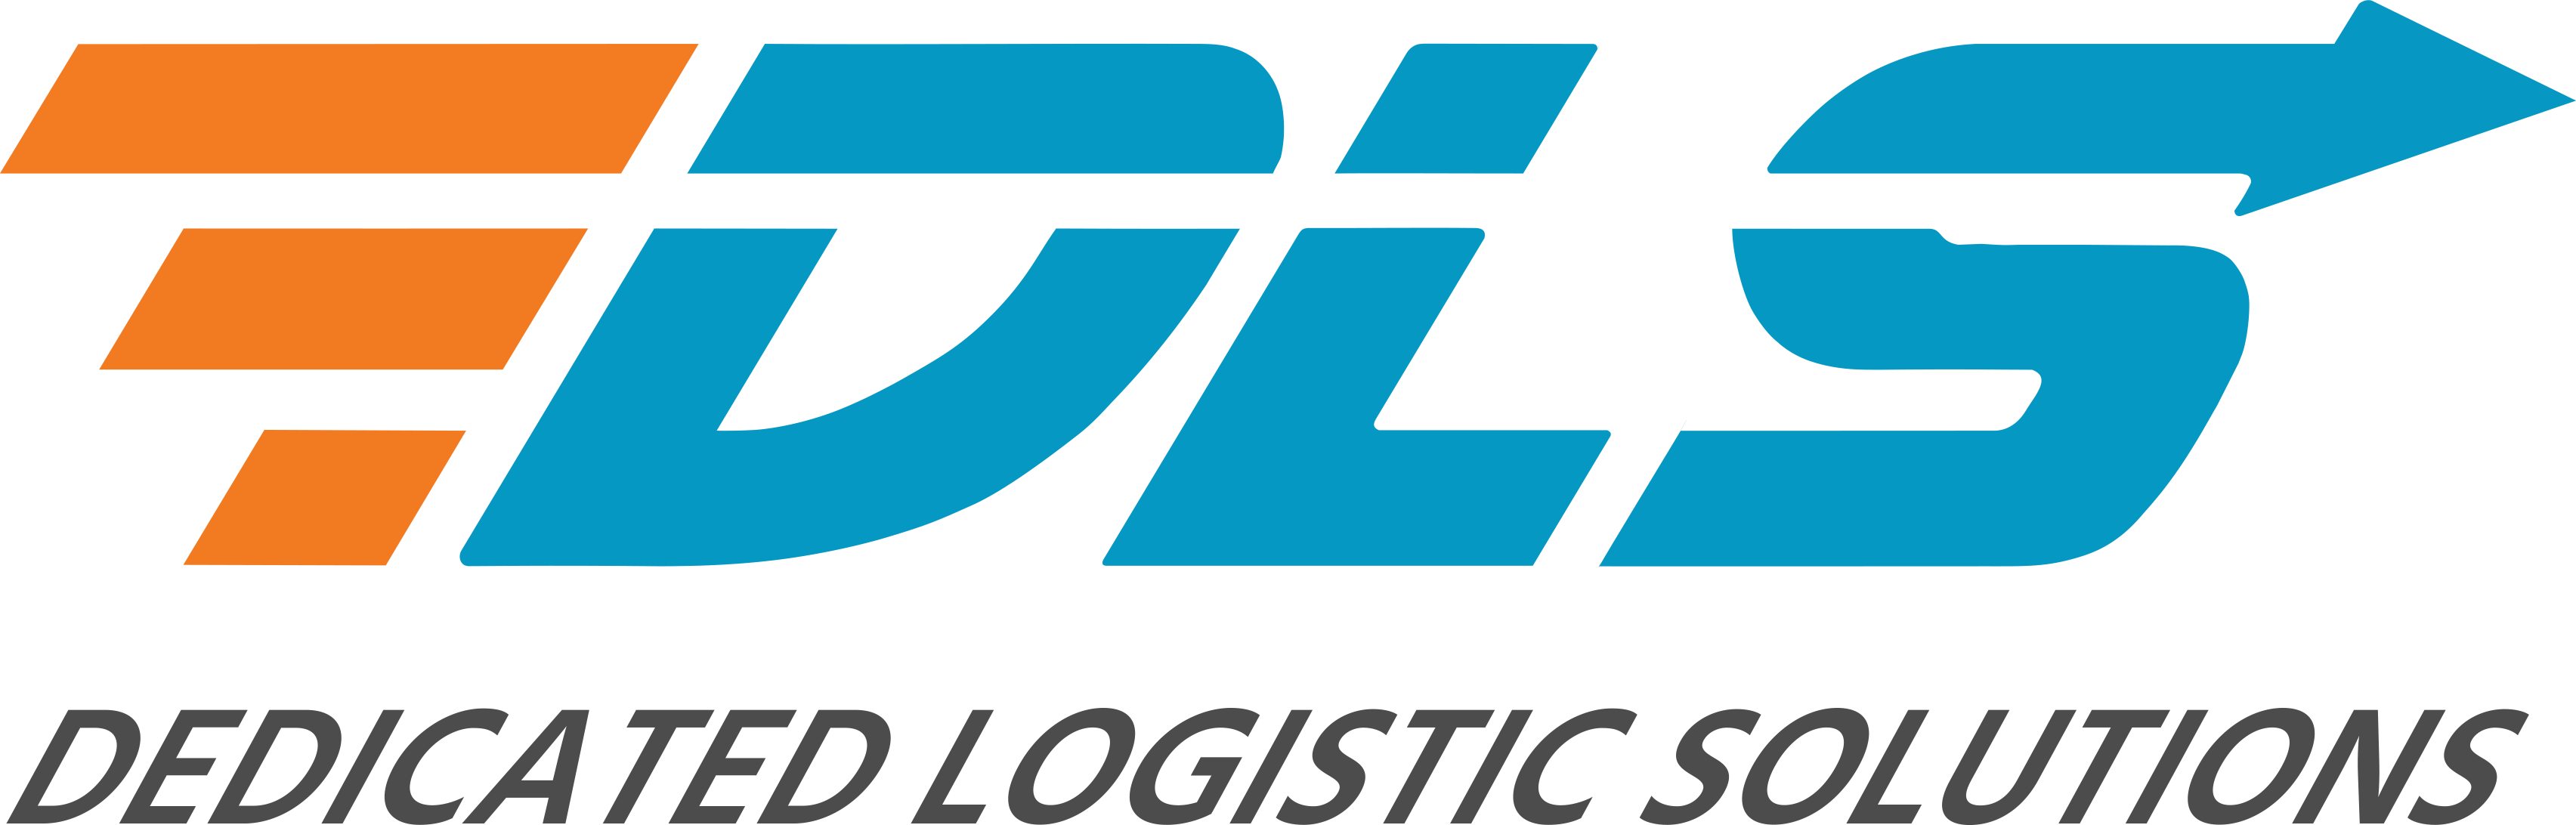 Dedicated Logistic Solutions